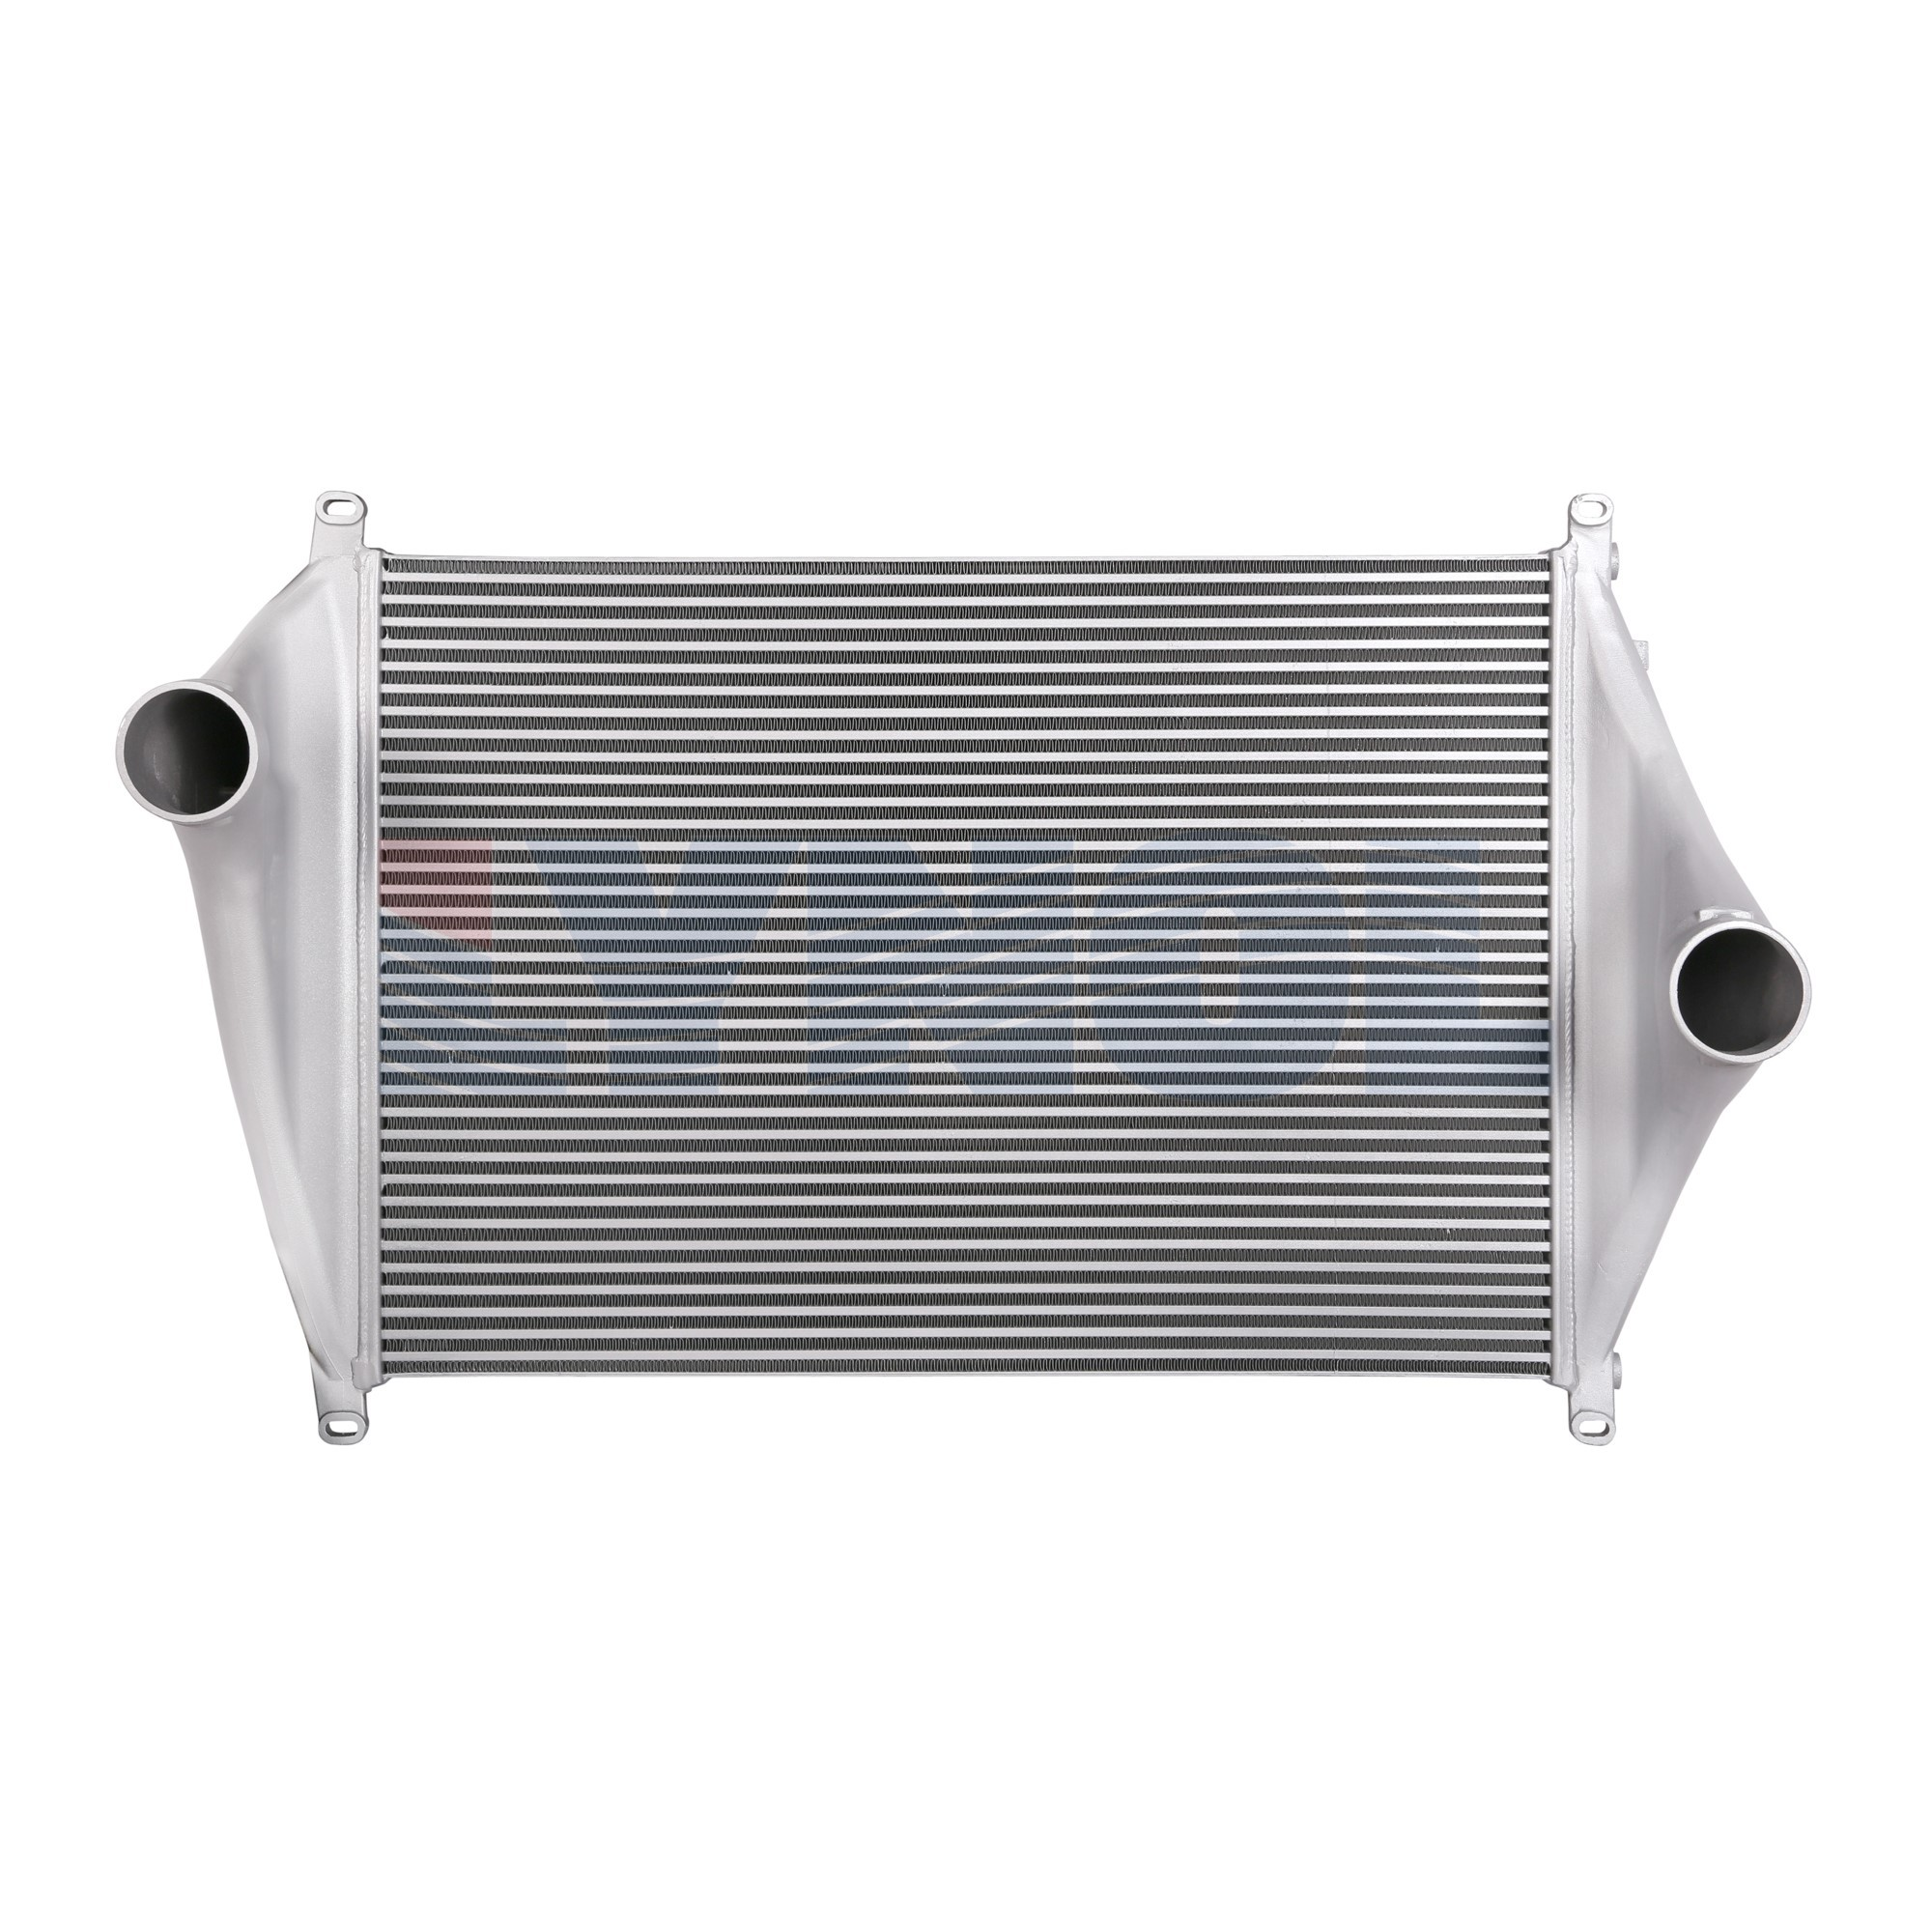 2400-002 - Freightliner Charge Air Cooler